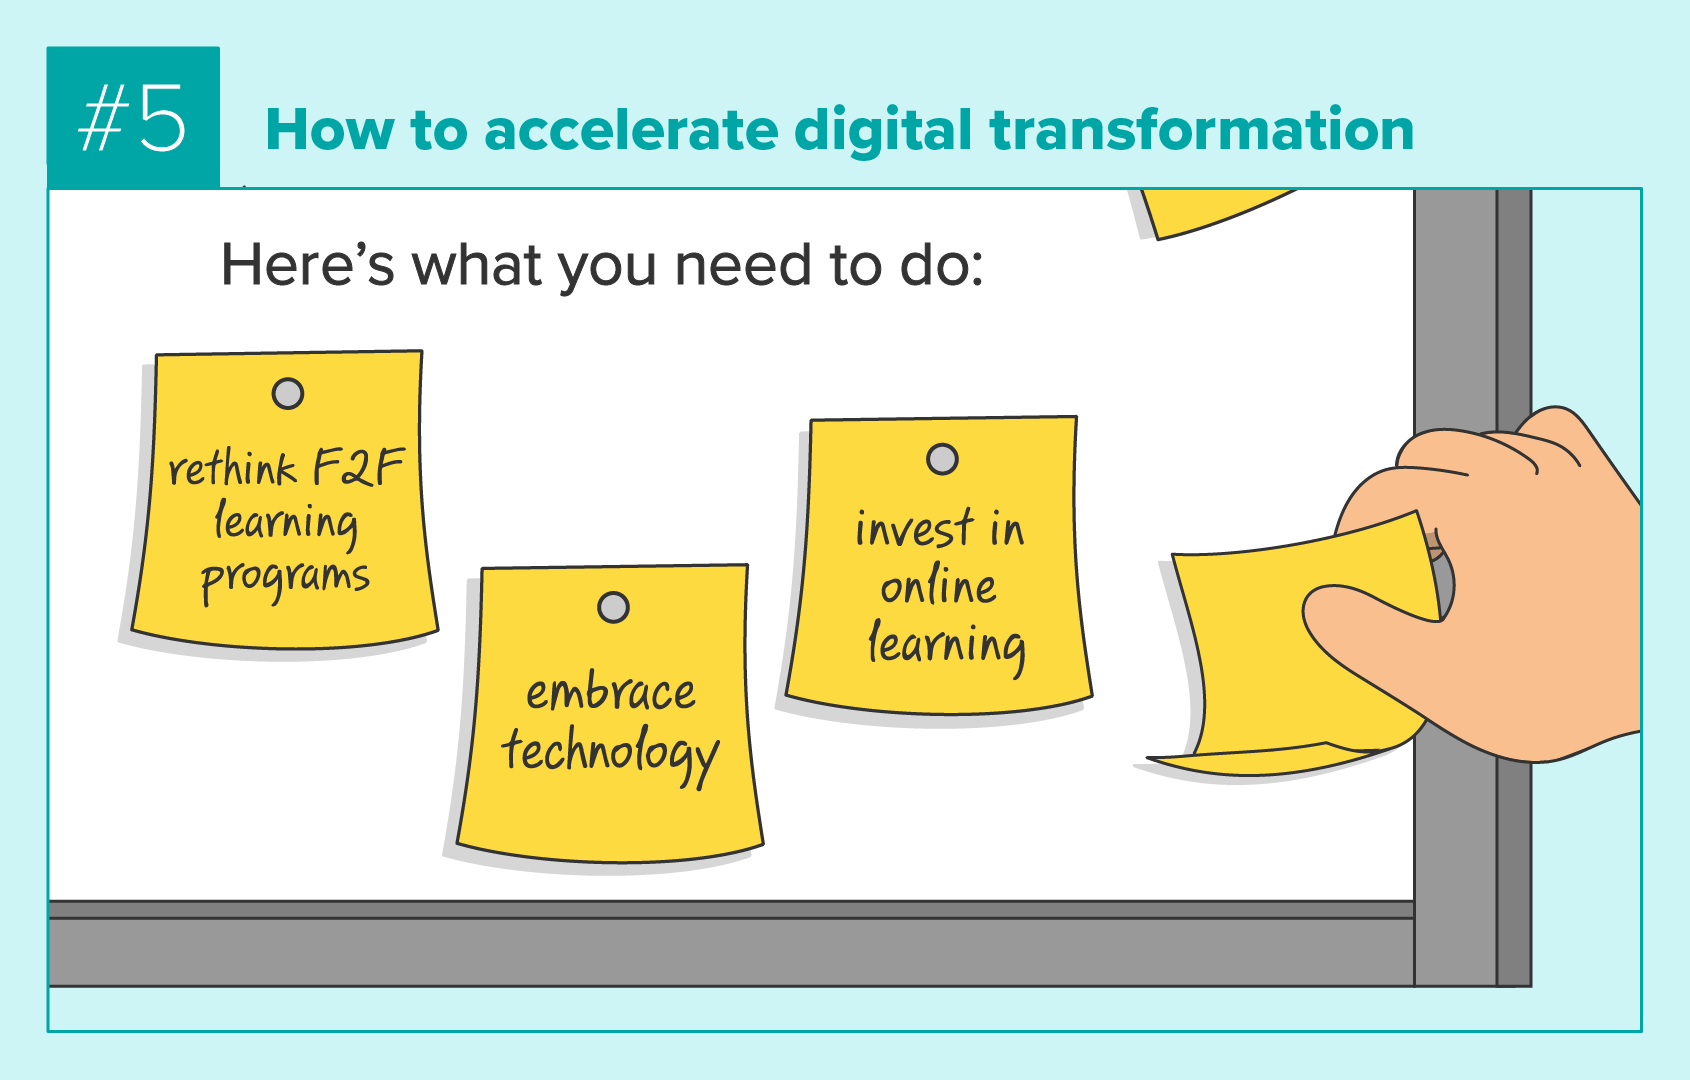 How to accelerate digital transformation